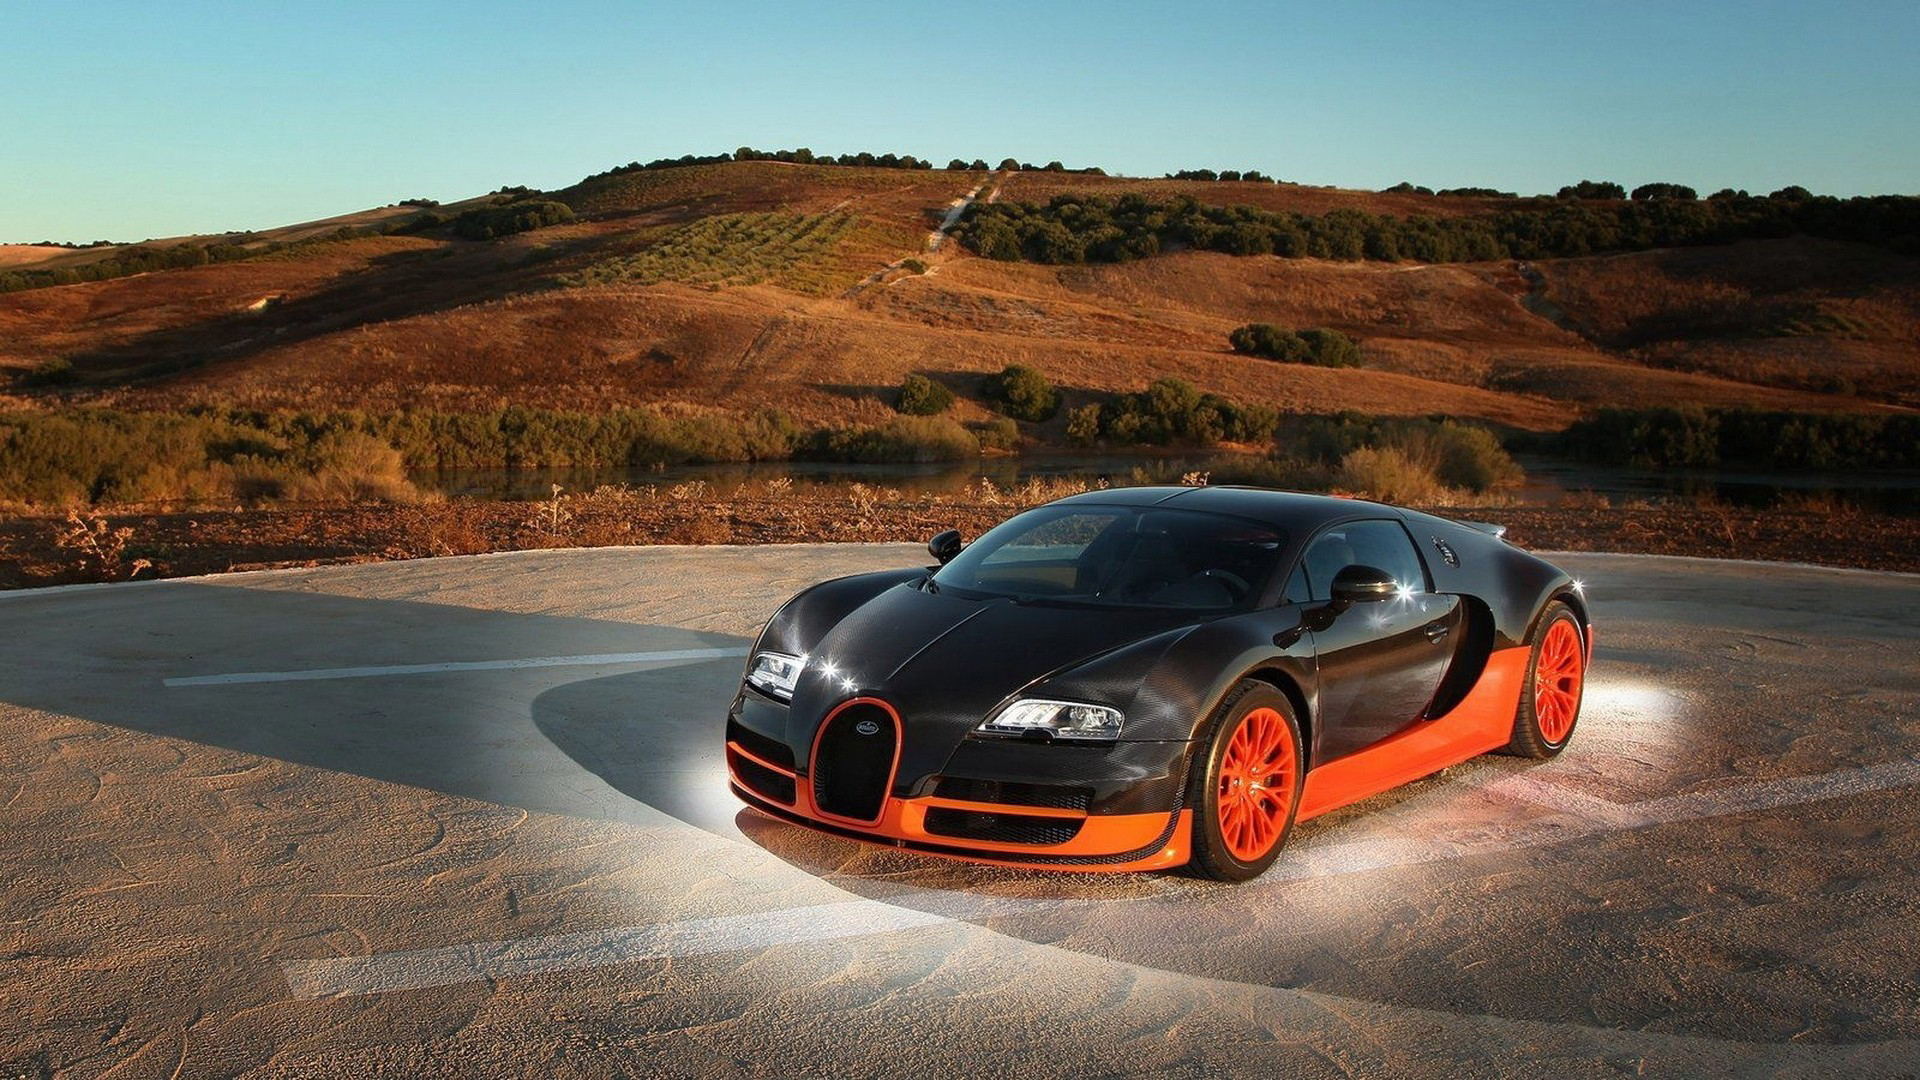 50 Cool Bugatti Wallpapers Backgrounds For Free Download